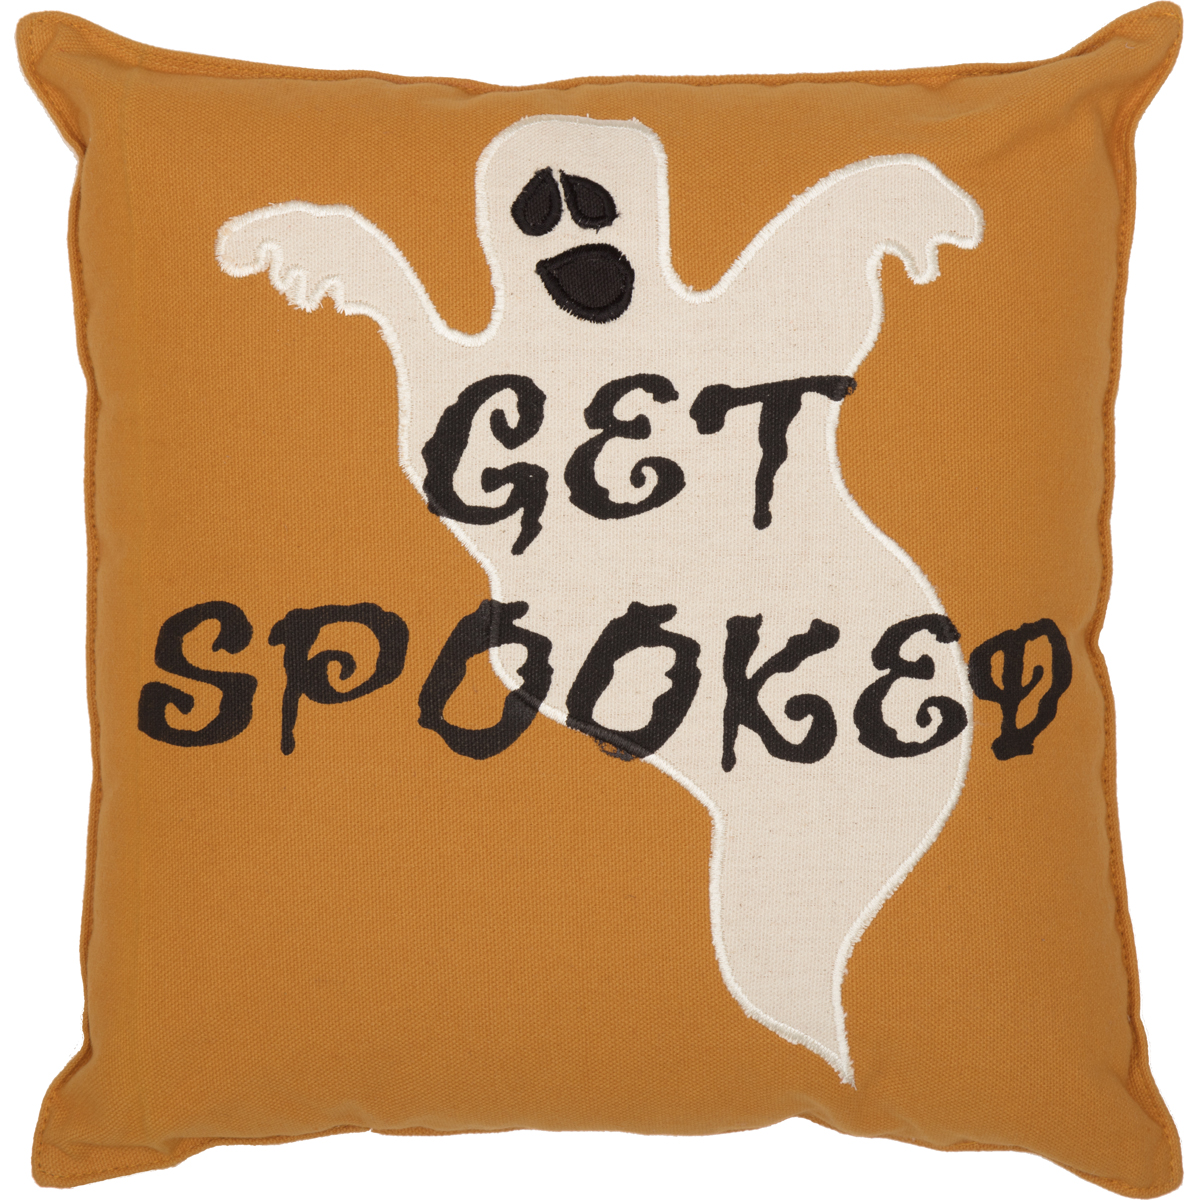 Get Spooked Pillow 12x12